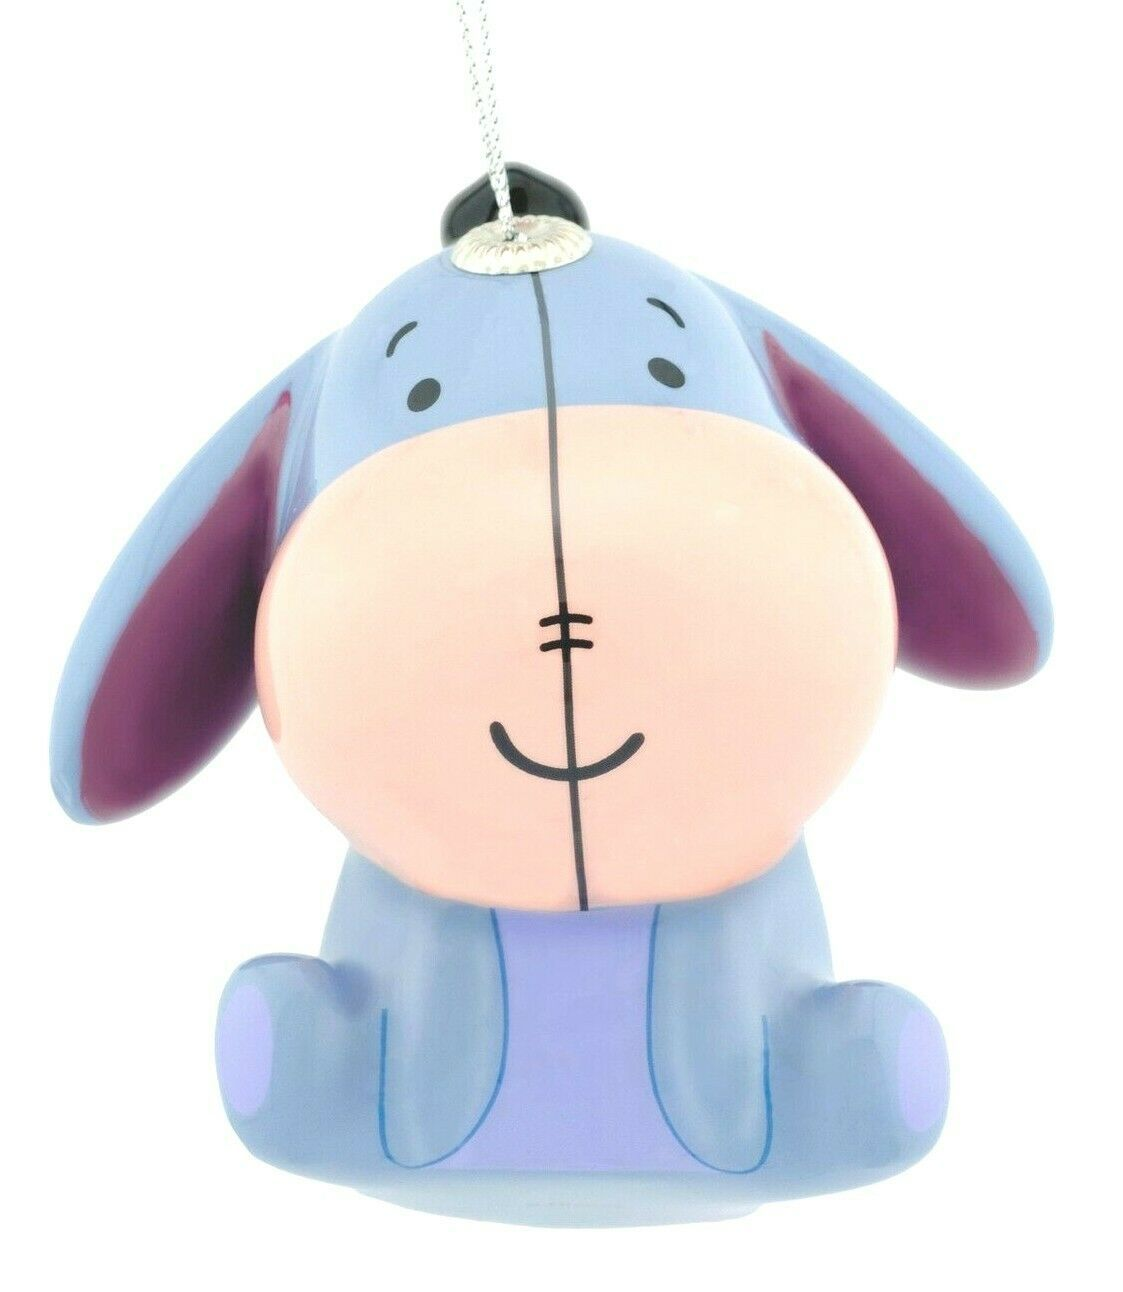 Hallmark Disney Winnie the Pooh Eeyore Decoupage Shatterproof Christmas Ornament